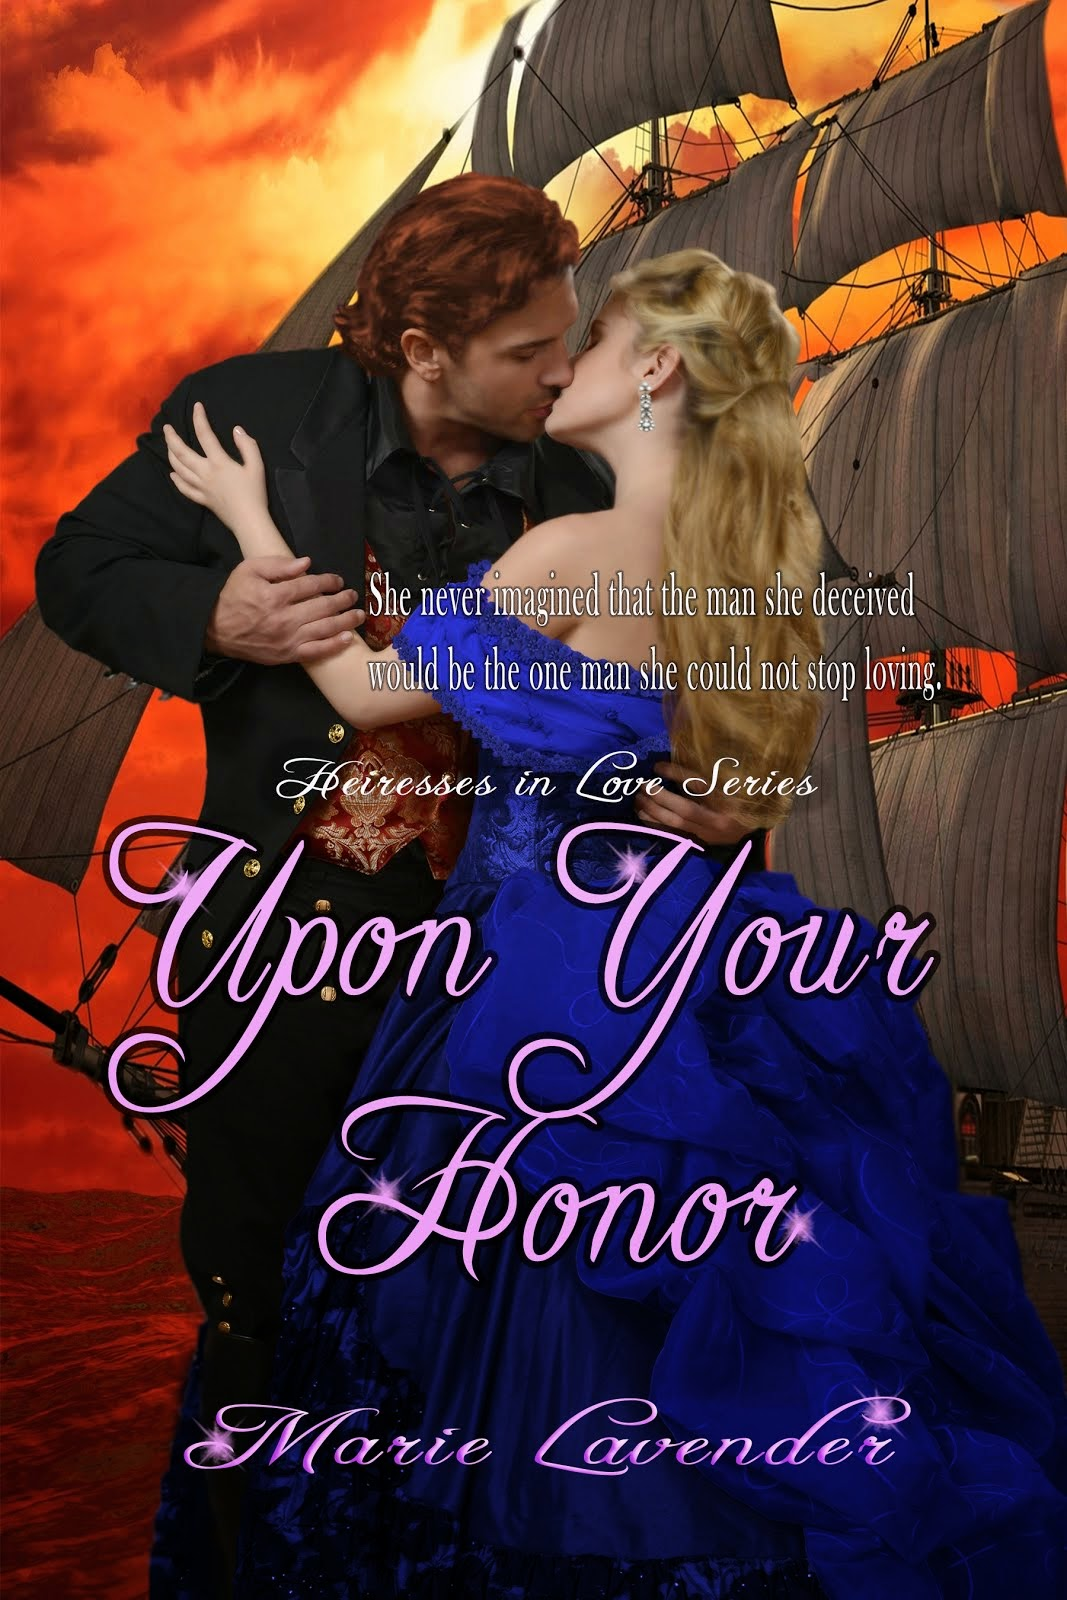 http://www.amazon.com/Upon-Your-Honor-Marie-Lavender-ebook/dp/B00JTKTODG/ref=asap_bc?ie=UTF8